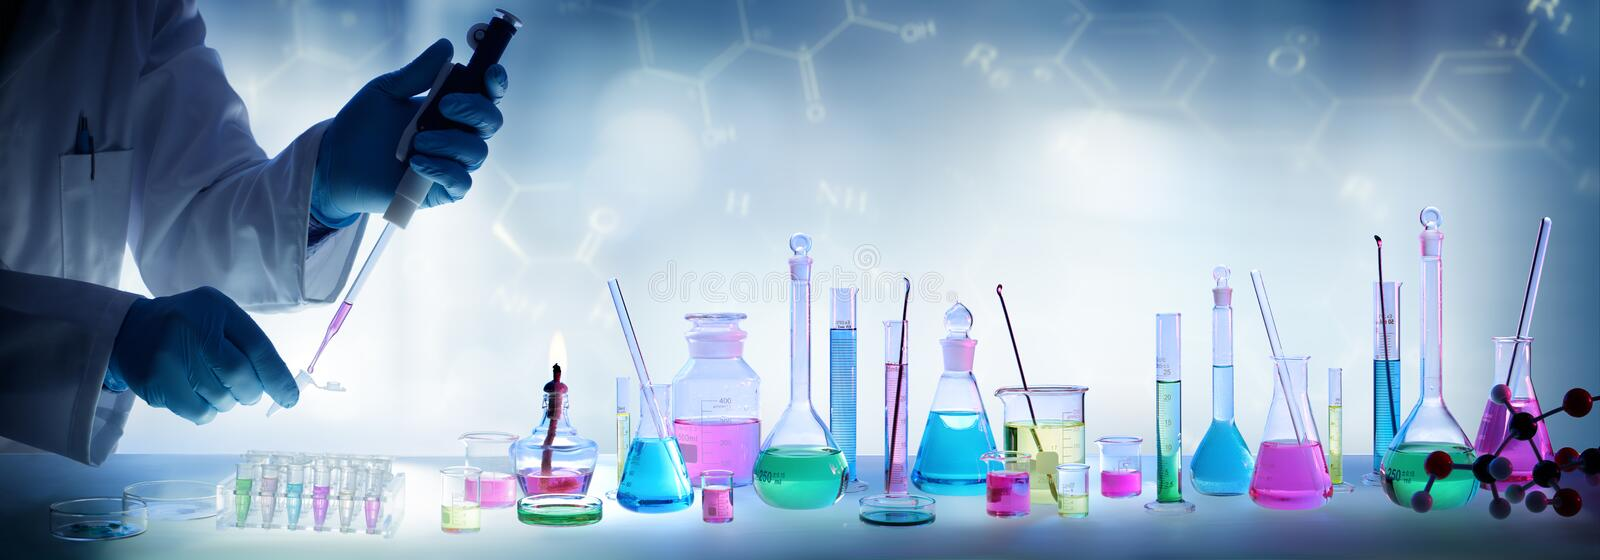 Analysis Laboratory - Scientist With Pipette And Beaker stock photography